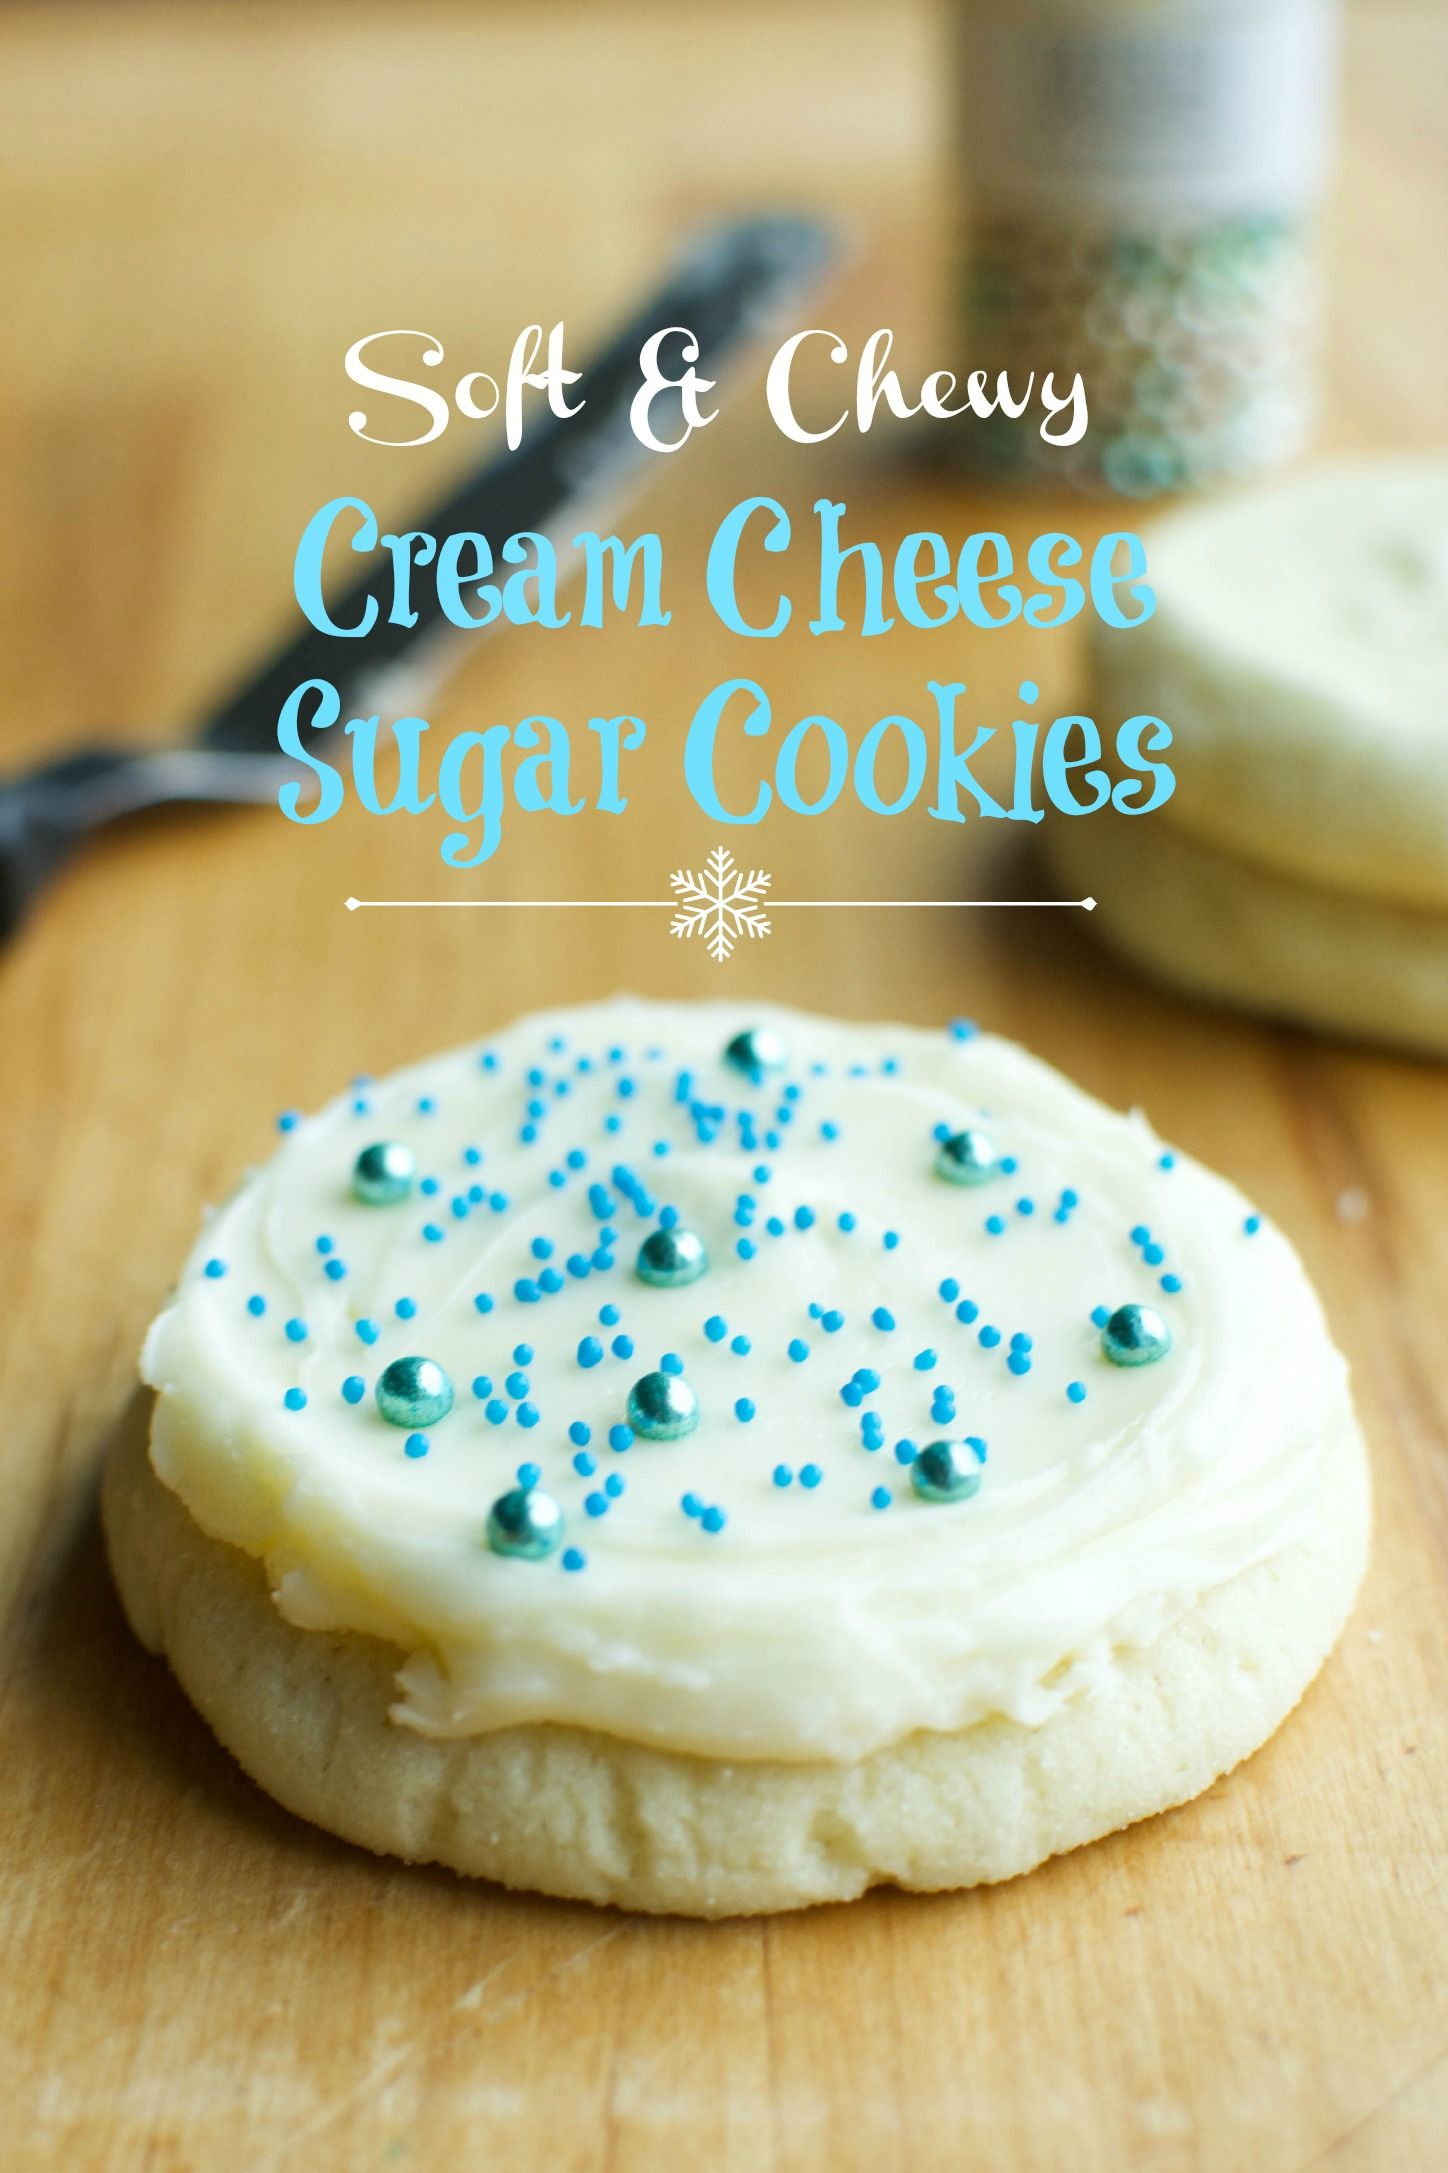 Soft & Chewy Cream Cheese Sugar Cookies - A baJillian Recipes #creamcheesefrosting